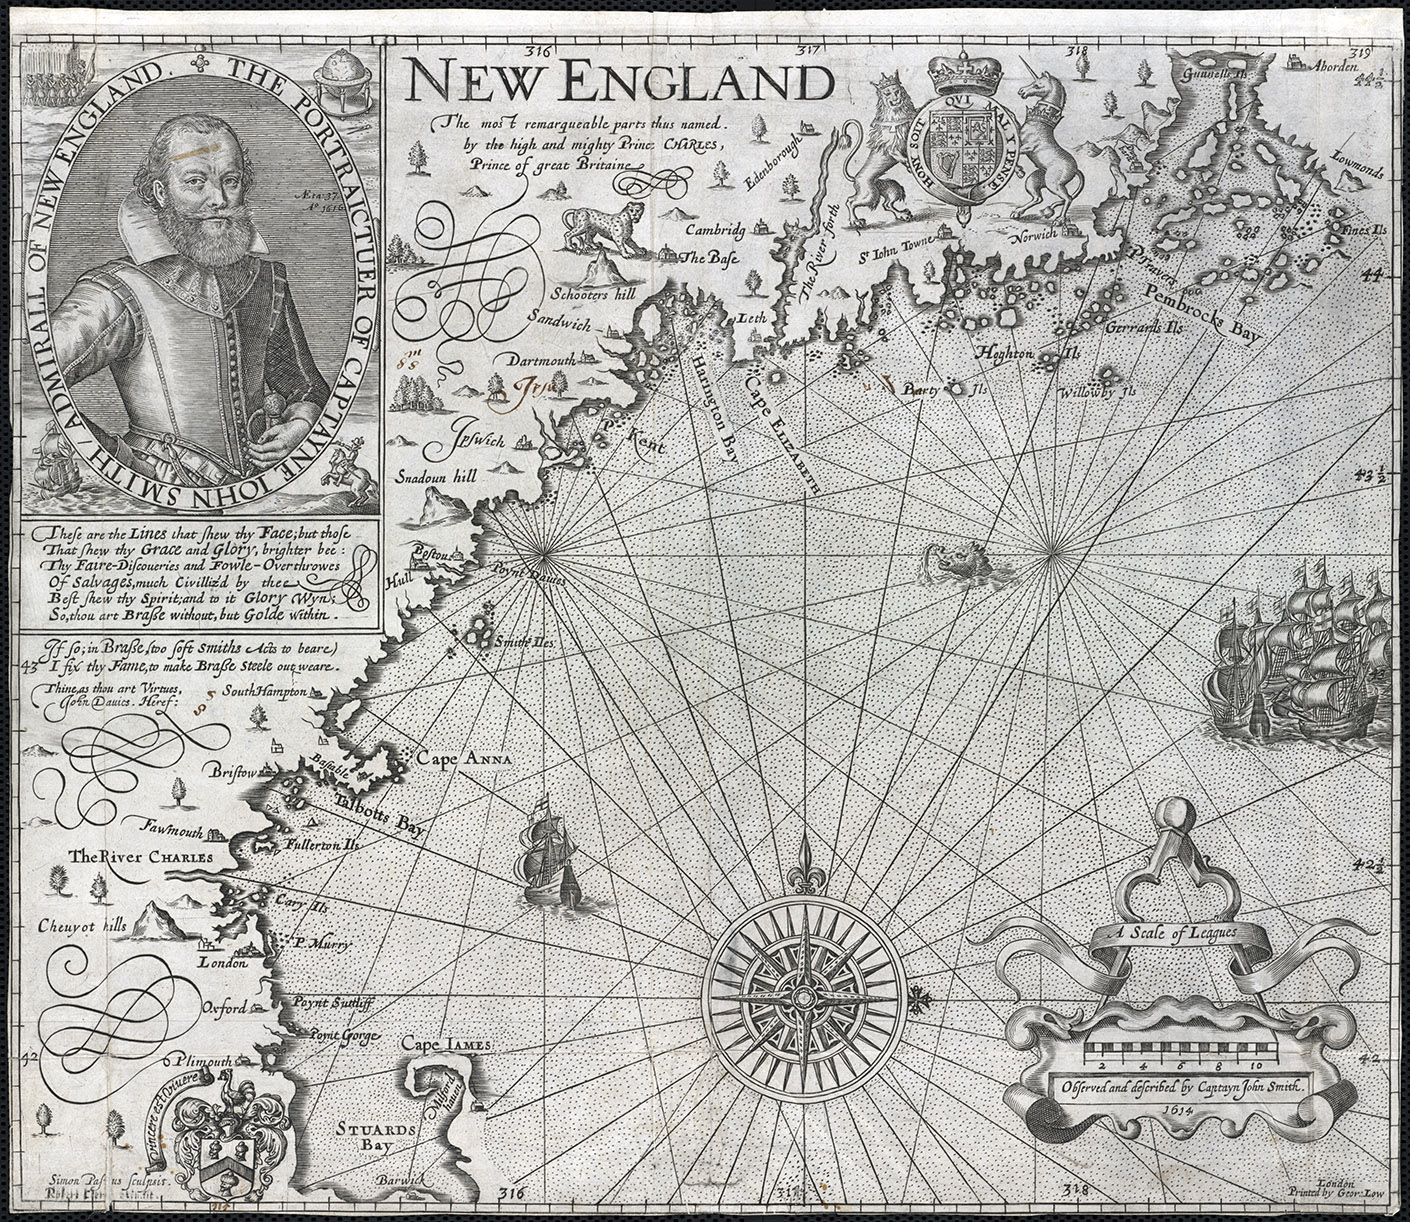 Simon de Passe,  New England/John Smith , state 4 (1624). Leventhal Map Collection, Boston Public Library, https://collections.leventhalmap.org/search/commonwealth:3f462s64w]